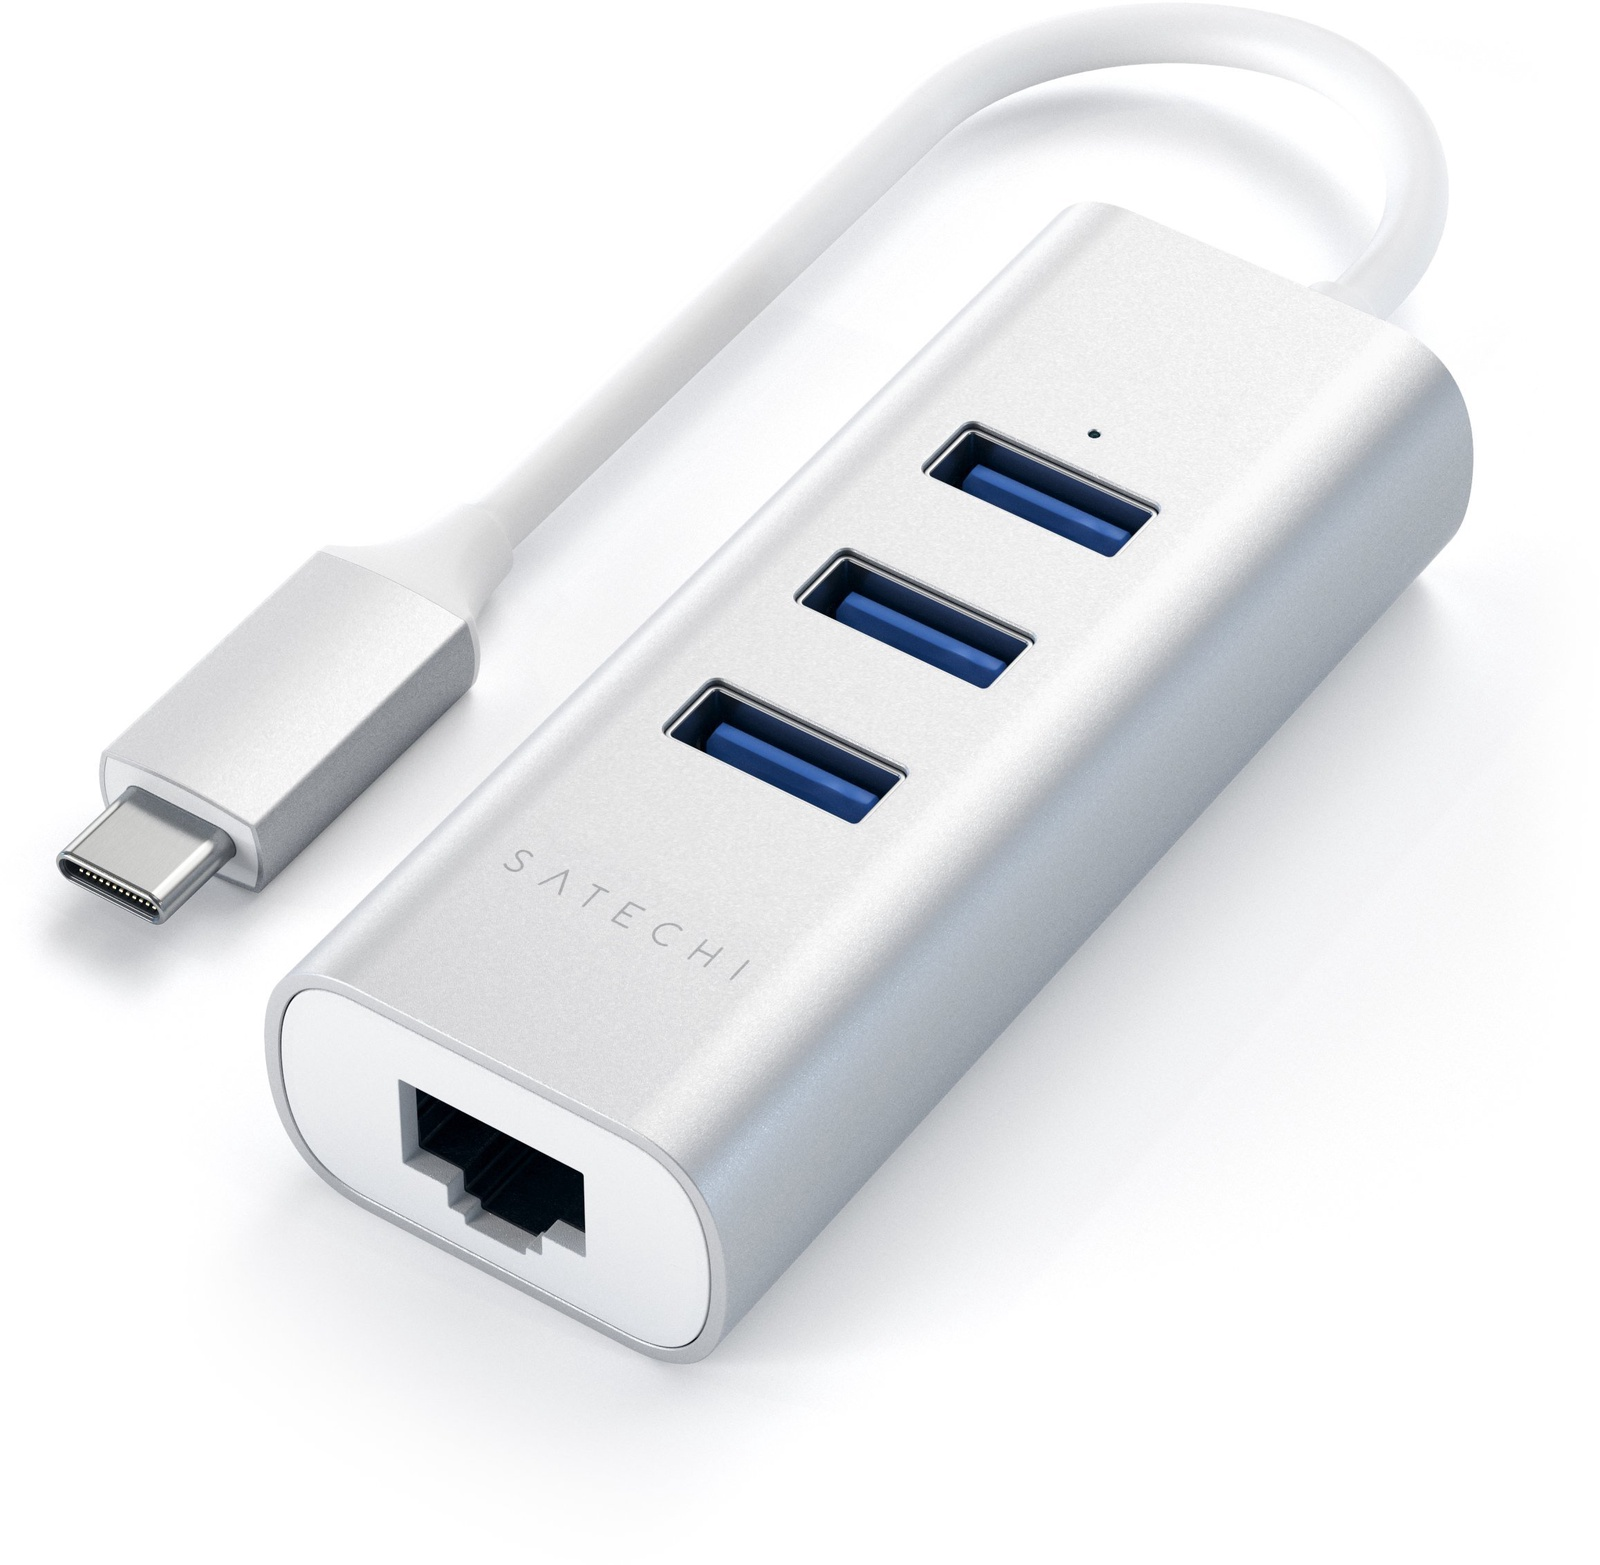 Переходник Satechi Type-C 2-in-1 USB 3.0 Aluminum 3 Port Hub and Ethernet Port Silver расширитель портов ввода вывода belkin 4 port hub usb c cbl micro b 3 1 usb 3 0